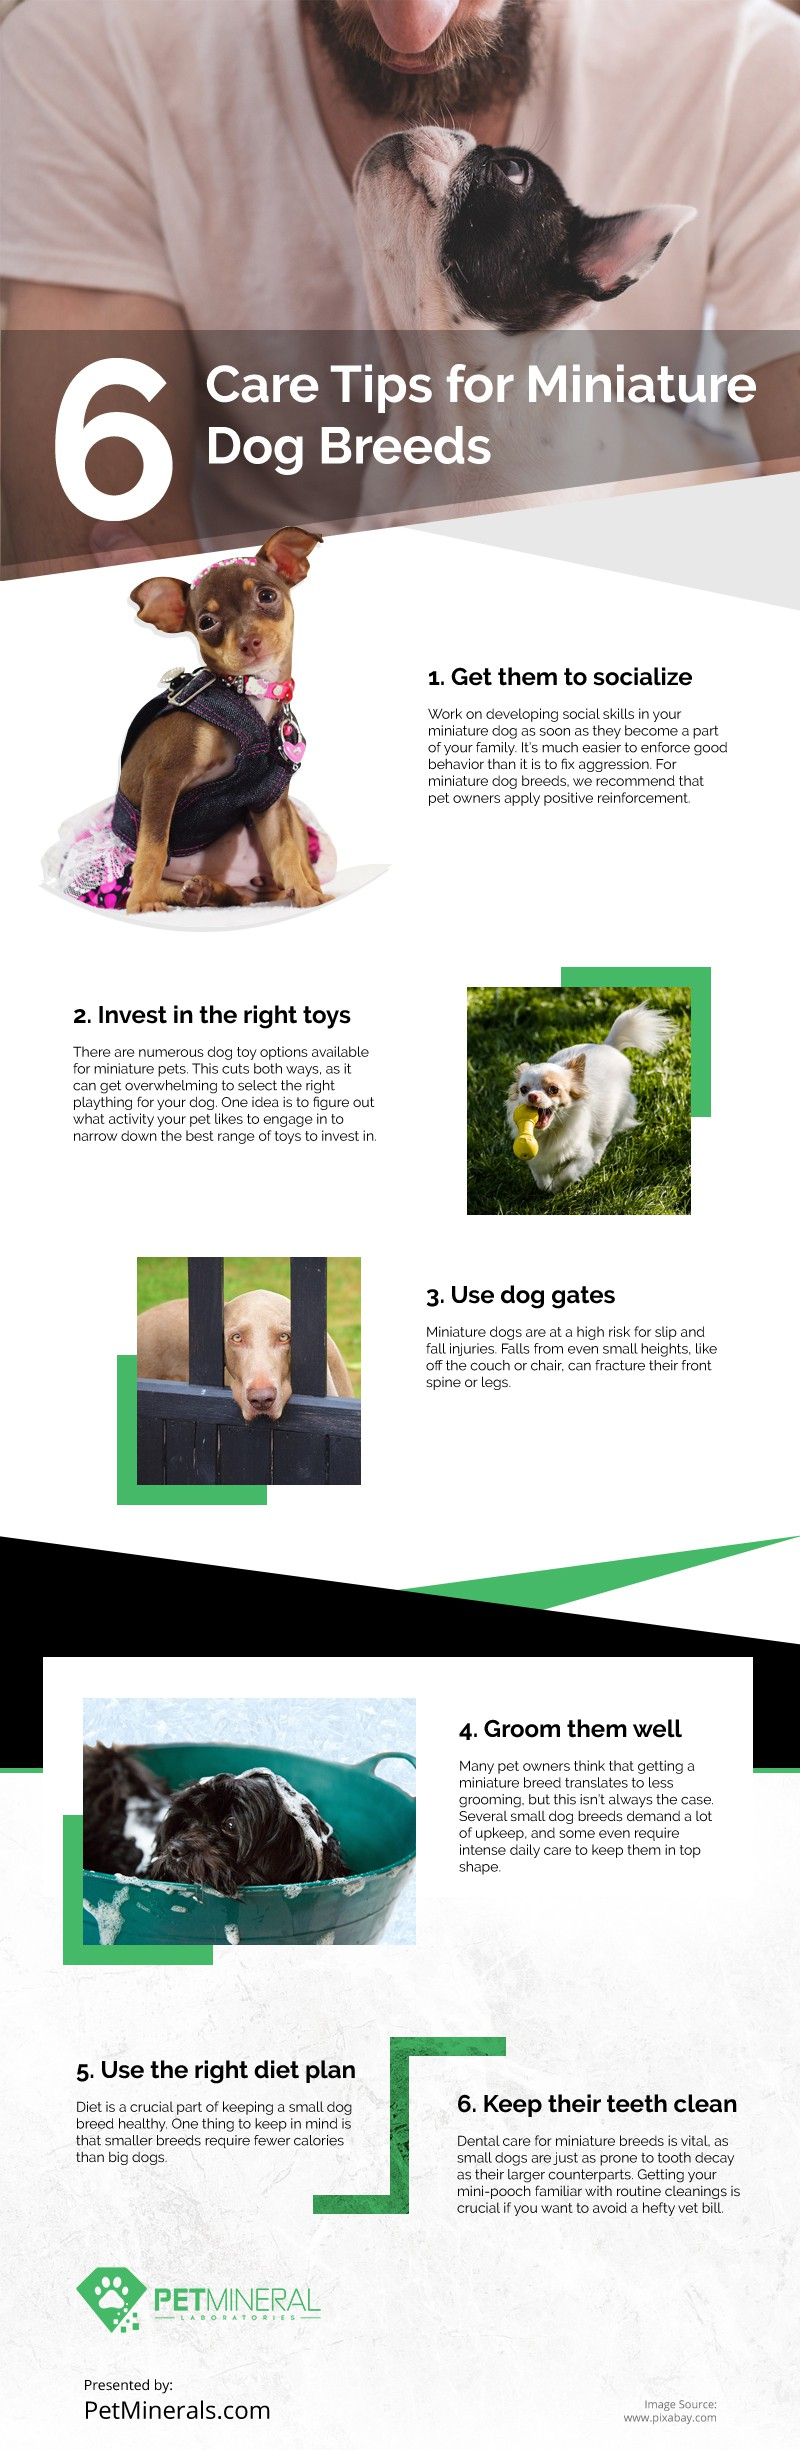 6 Care Tips for Miniature Dog Breeds